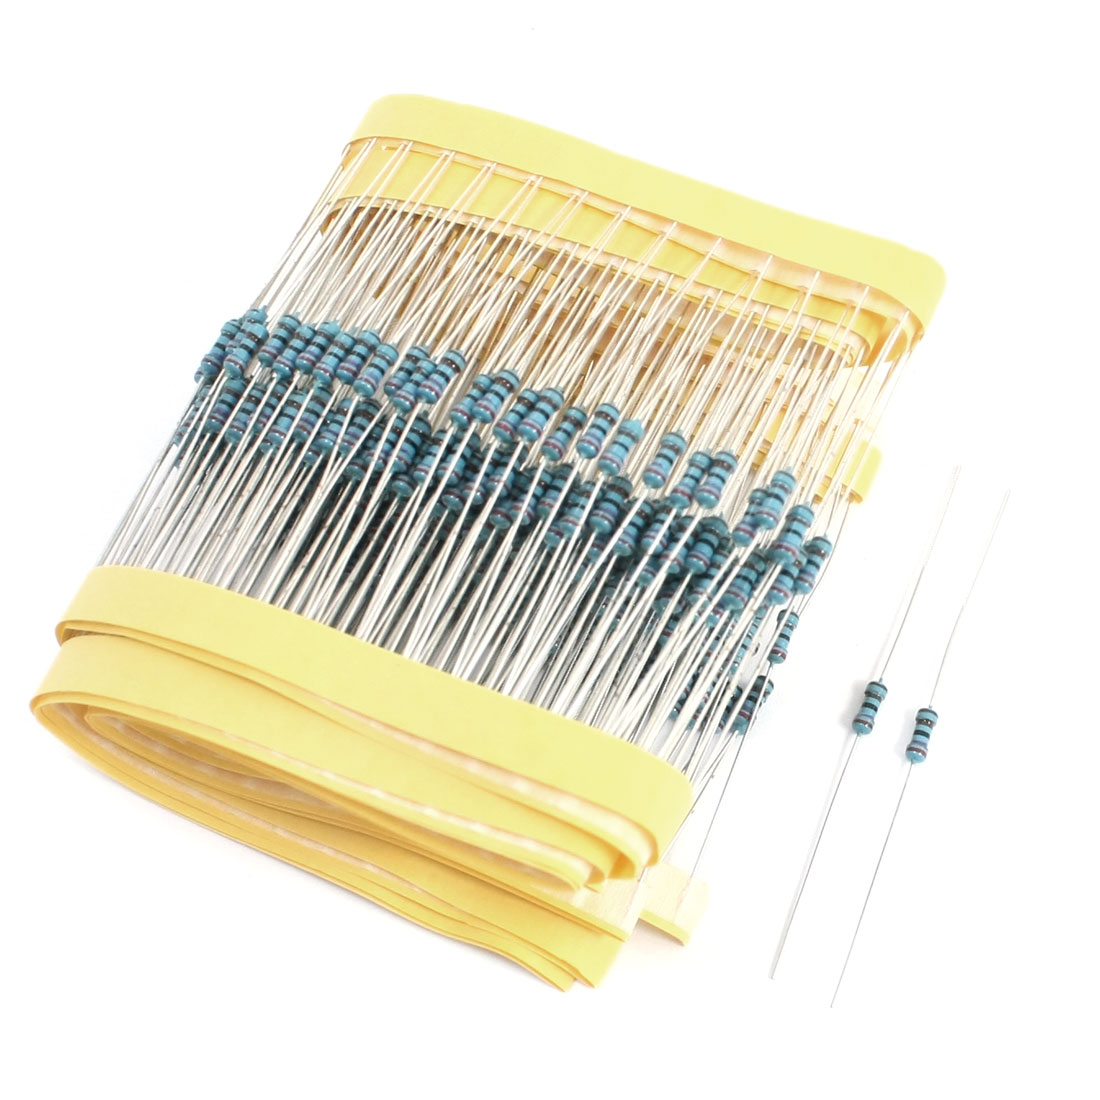 300PCS 0.25W 2.7K Ohm 1% Tolerance 6x2mm Axial Lead Metal Film Resistors